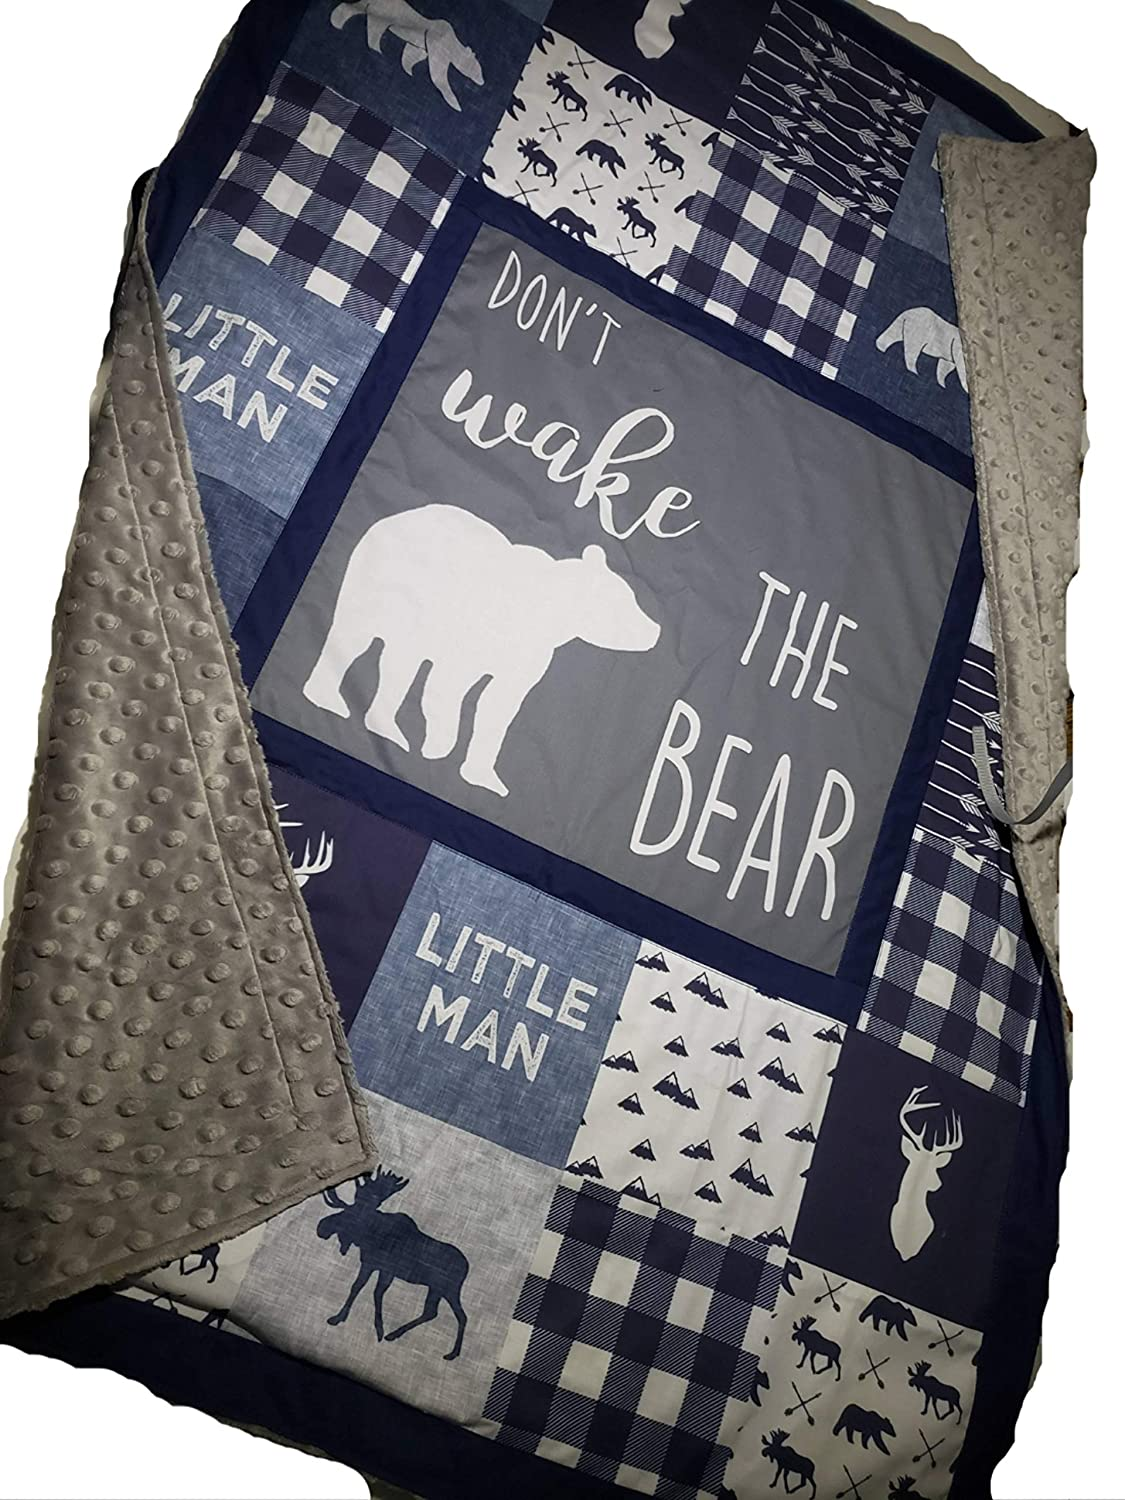 Dont wake the bear,lumber jack,woodland 1 to 4 Piece baby boy nursery crib bedding, Personalized, Quilt with minky back,Rail guards,bed skirt,crib sheet,moose,bear, navy plaid